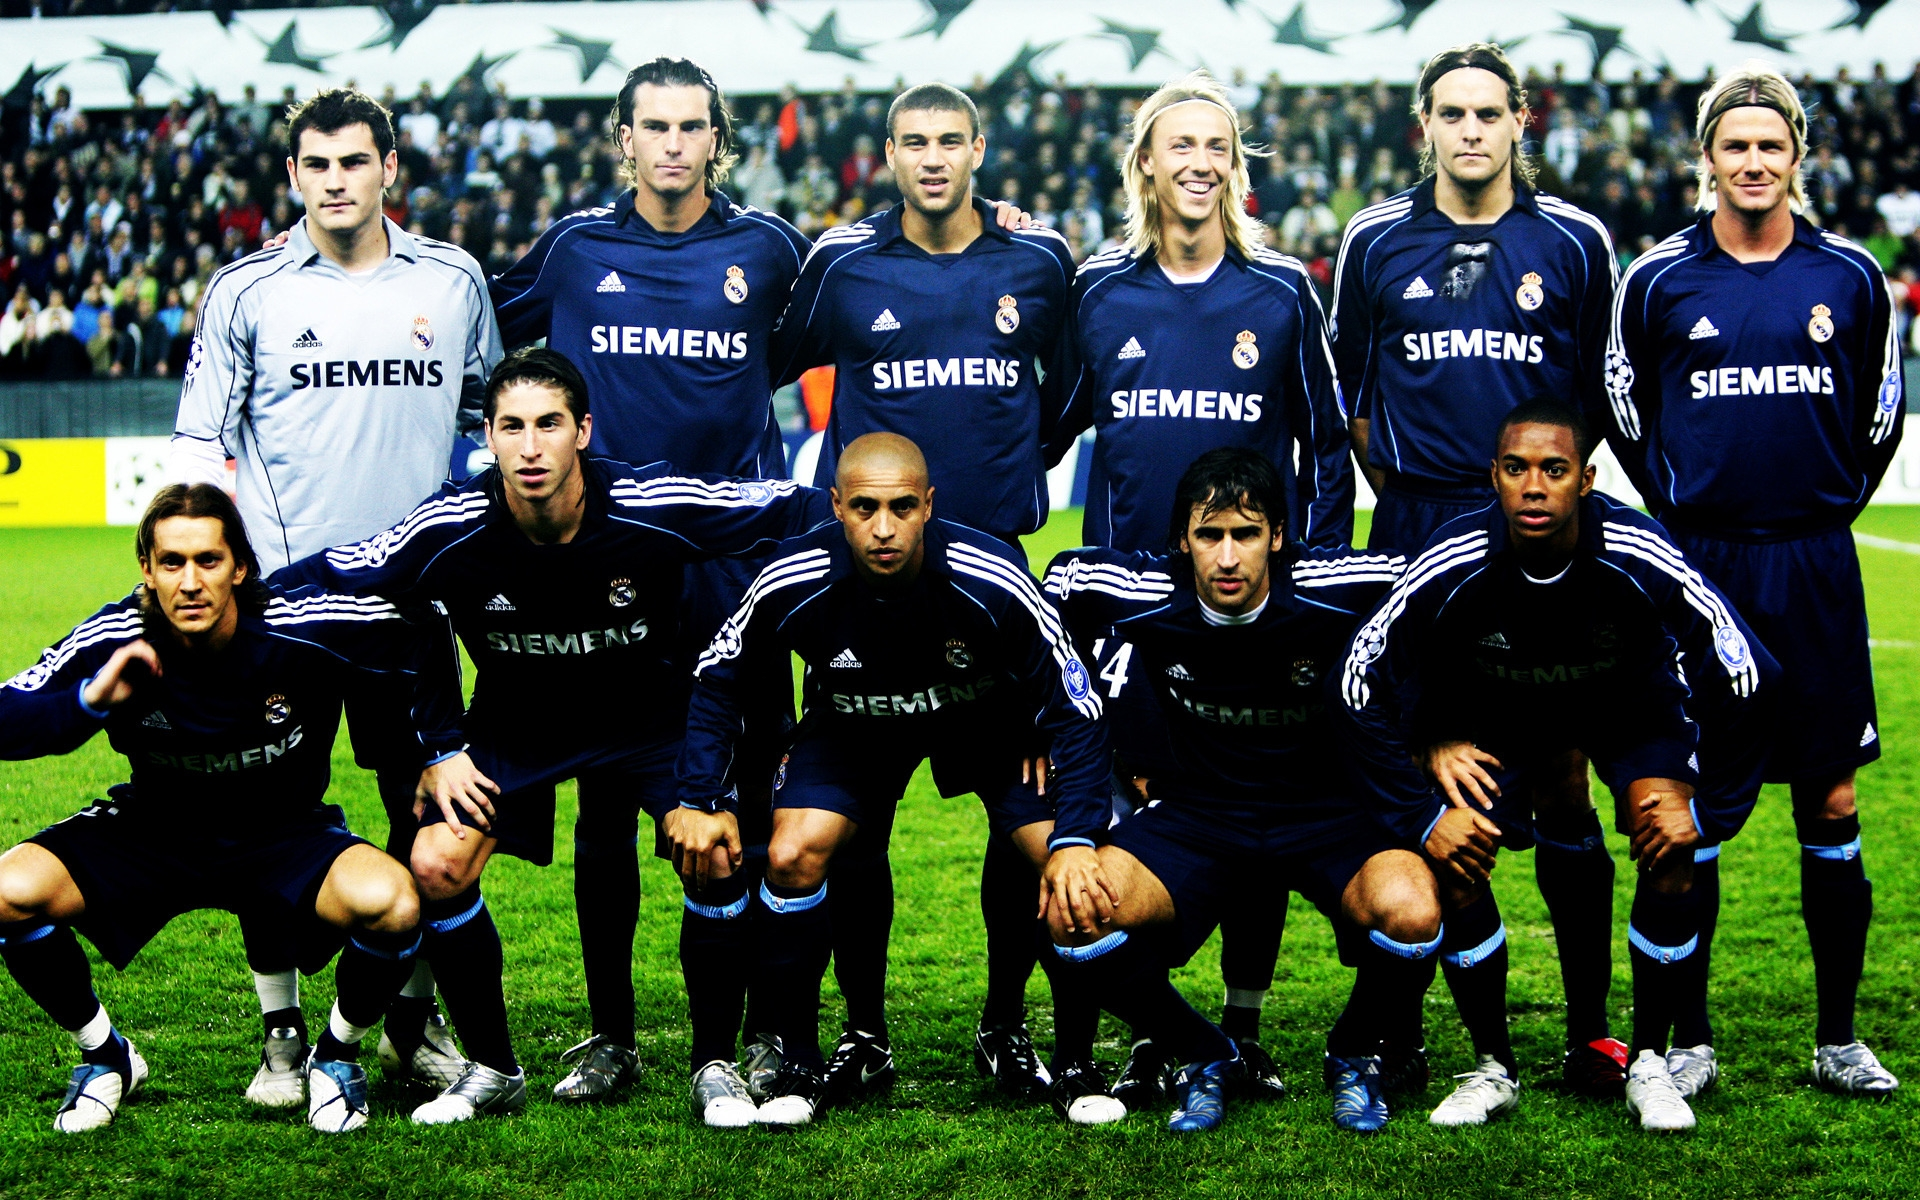 Real Madrid Team for 1920 x 1200 widescreen resolution